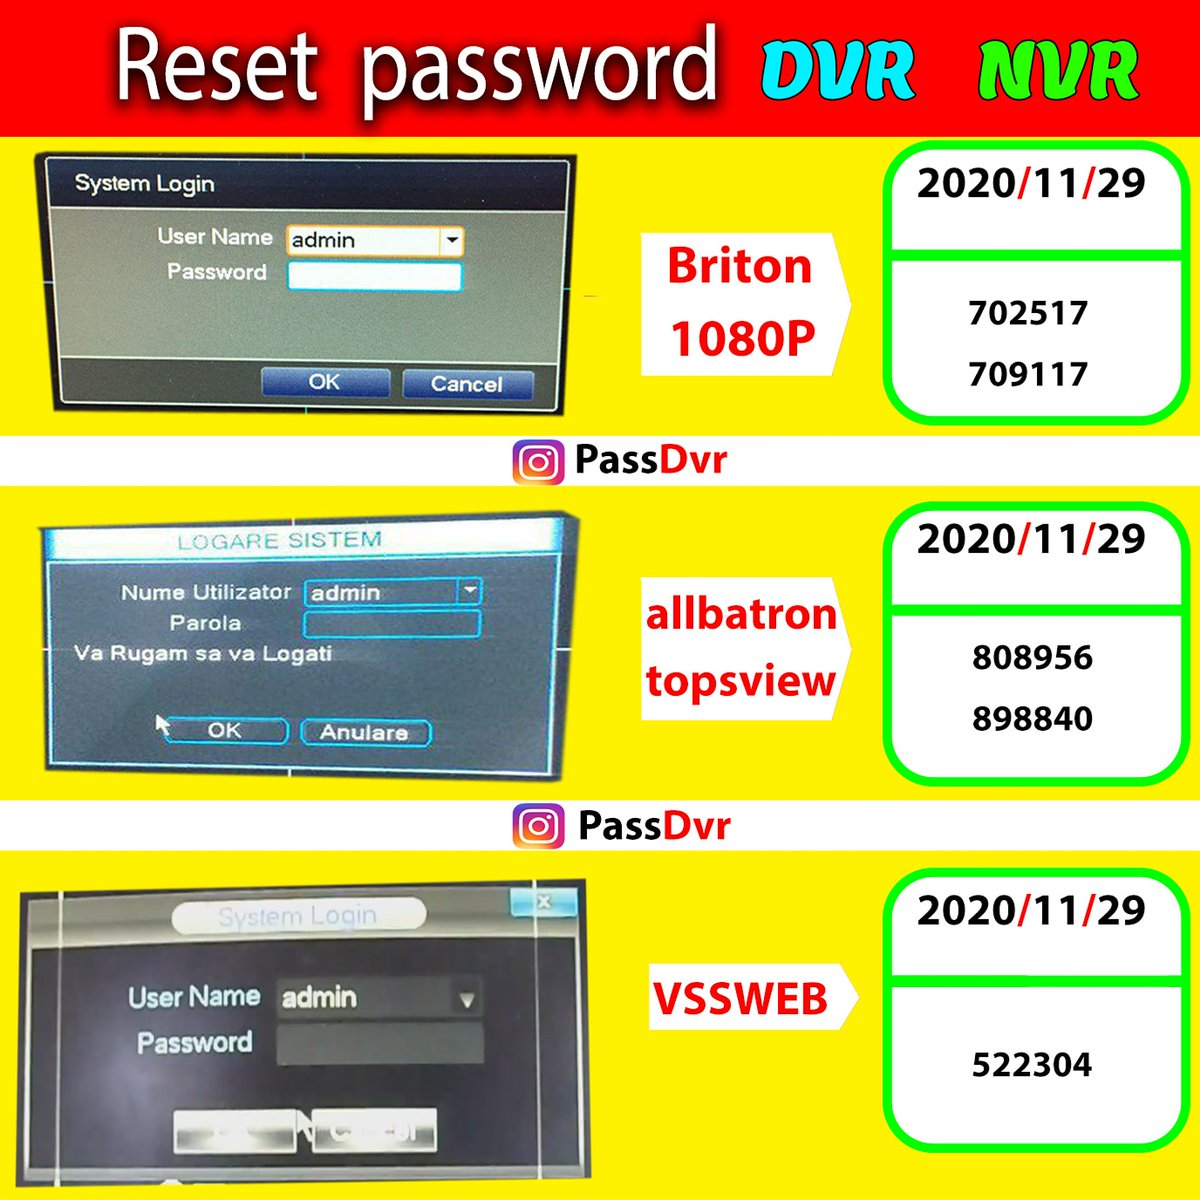 Send me a message to get the password of other dates or other models directly  #dvr #nvr #password #superpassword #reset #reset_password #resetpassword #security #system #security_system #camera #cctv #cctvcamera #cctv_camera #hikvision #dahua #ip #ipcamera #cctvcamera #bms https://t.co/AFrGTrrlY8